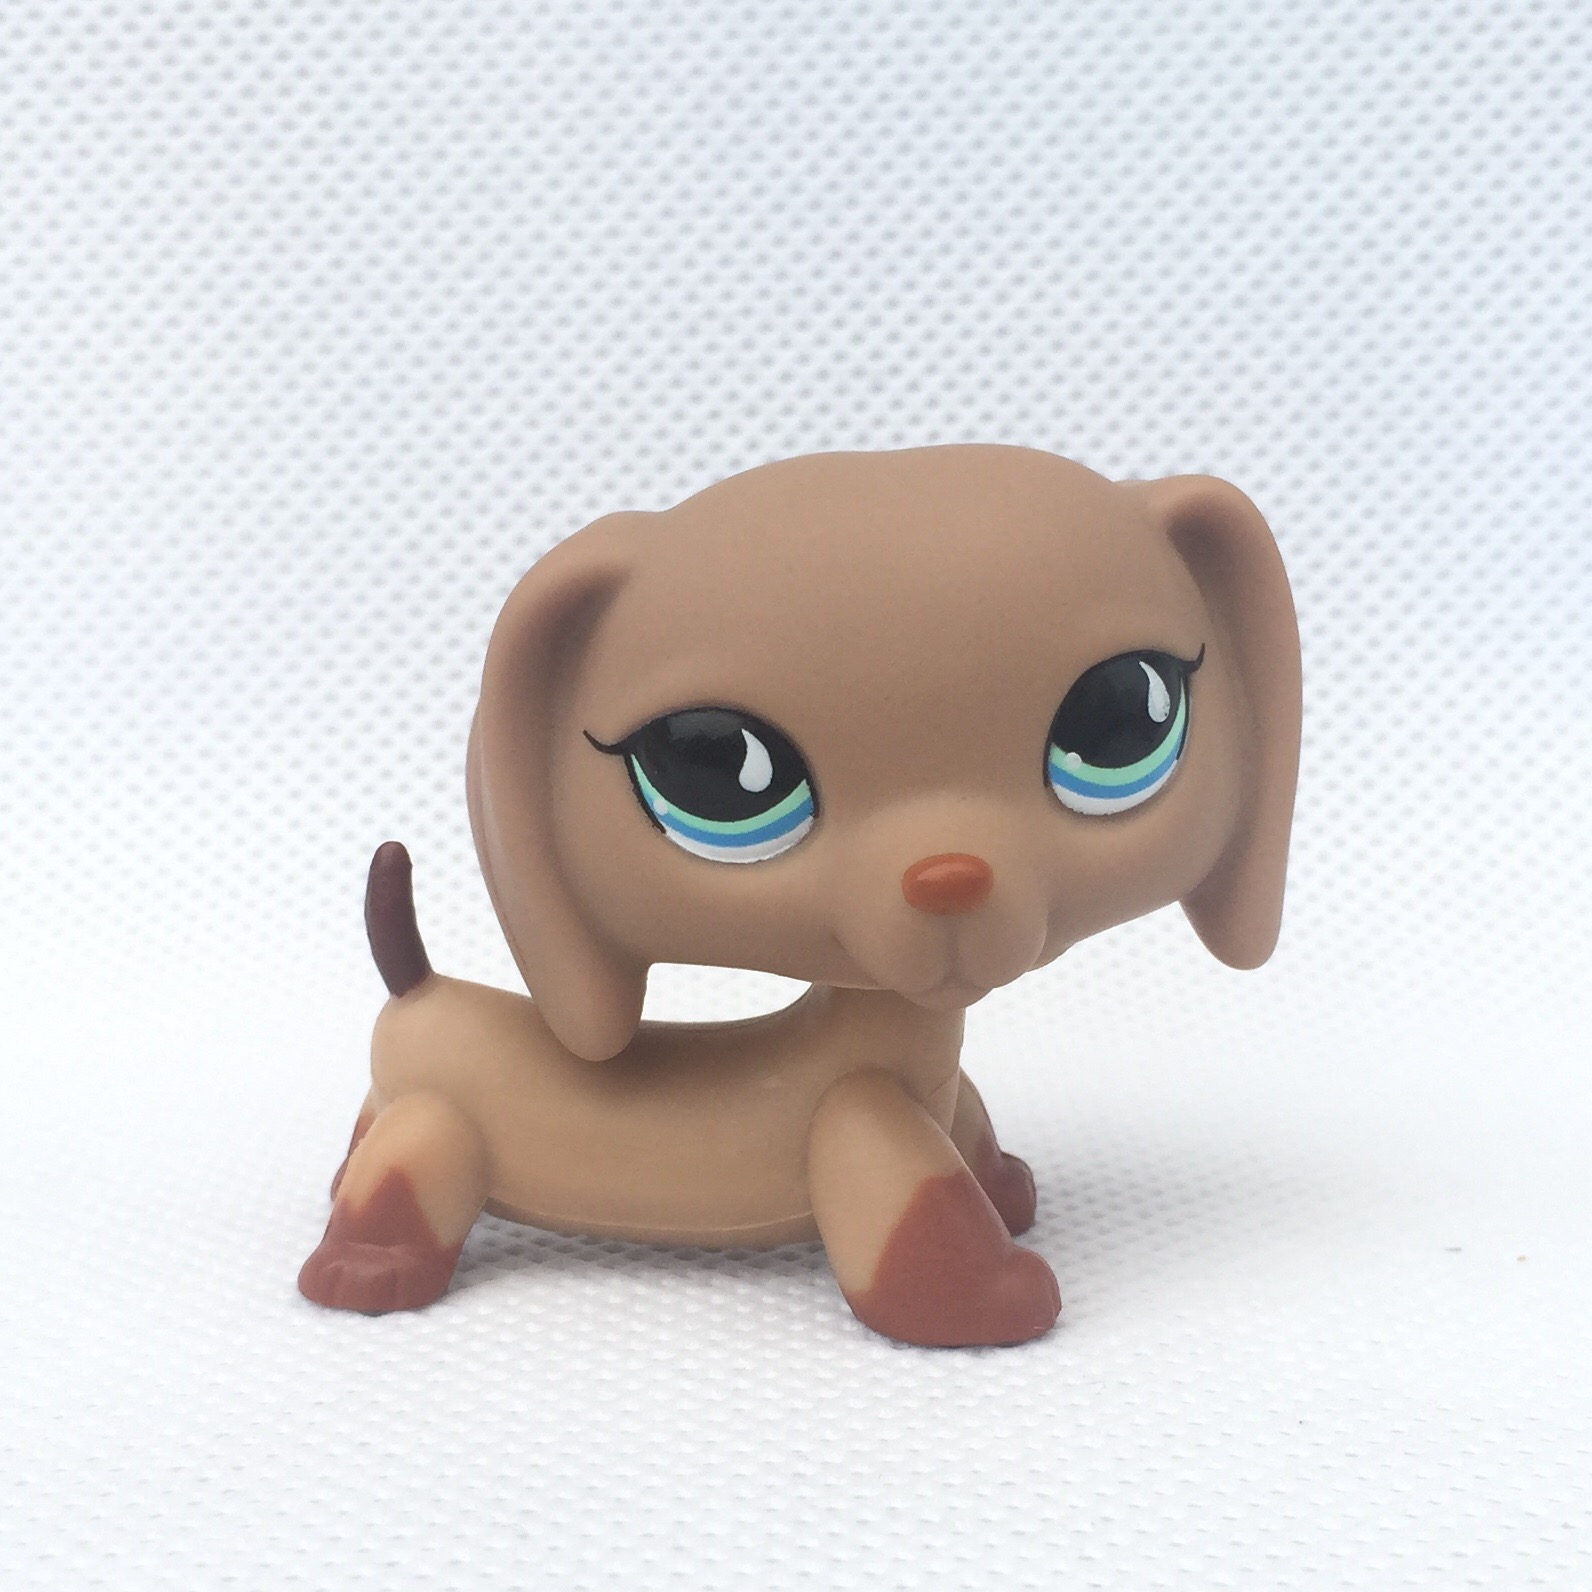 pet shop lps toys Collection figure Gift Dachshund Wiener Dog Teardrop blue Eyes 2 #518 lps new style lps toy bag 32pcs bag little pet shop mini toy animal cat patrulla canina dog action figures kids toys